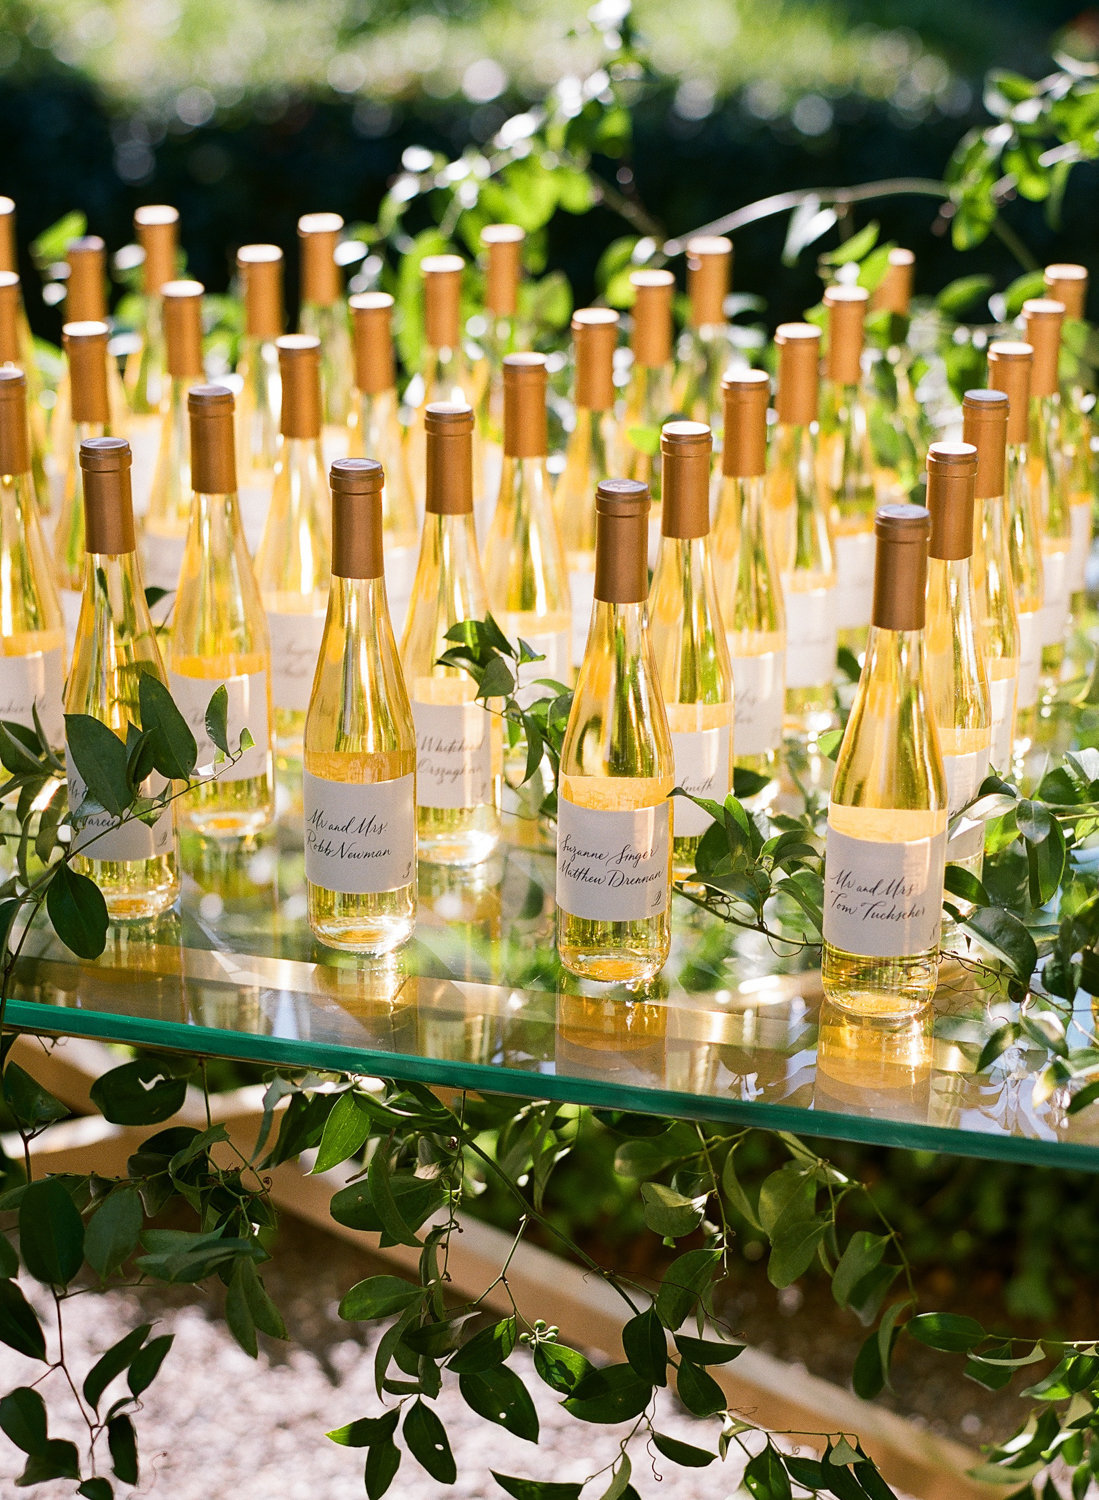 Favor for wedding by Jenny Schneider Events at the Beaulieu Garden in Napa Valley, California. Photo by Lori Paladino Photography.